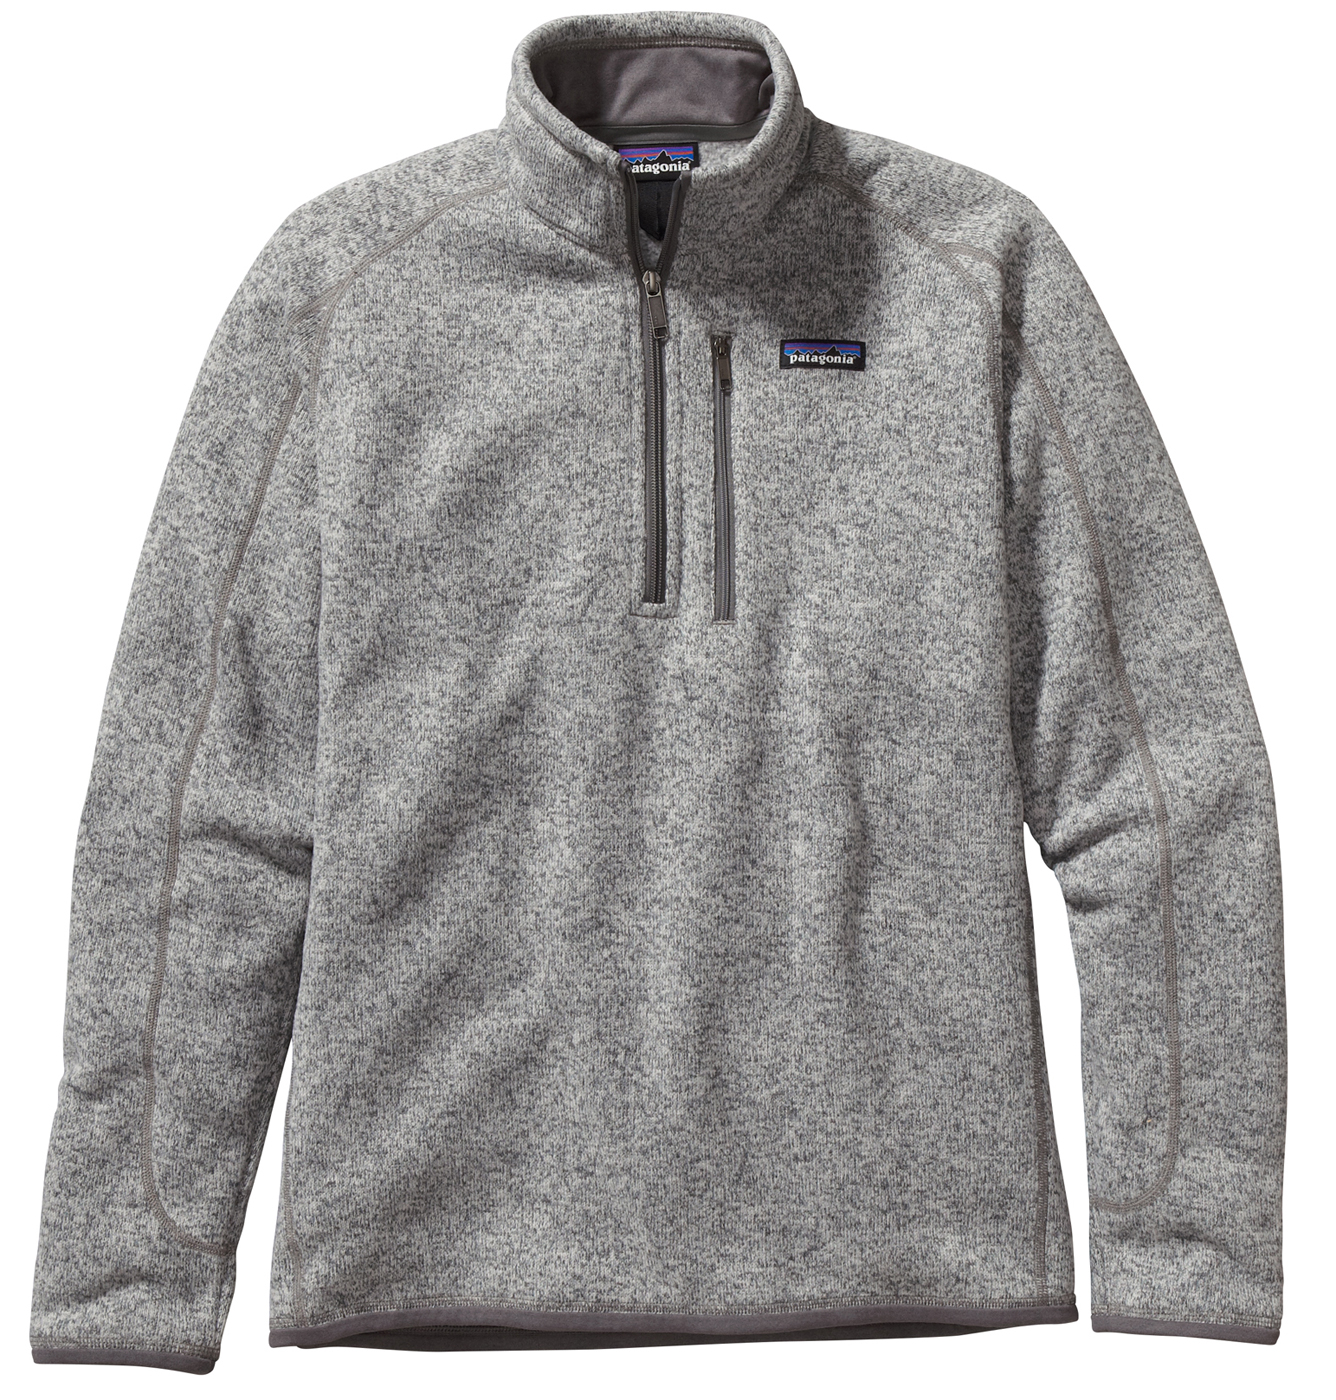 Patagonia Men S Better Sweater 1 4 Zip Fleece Jacket